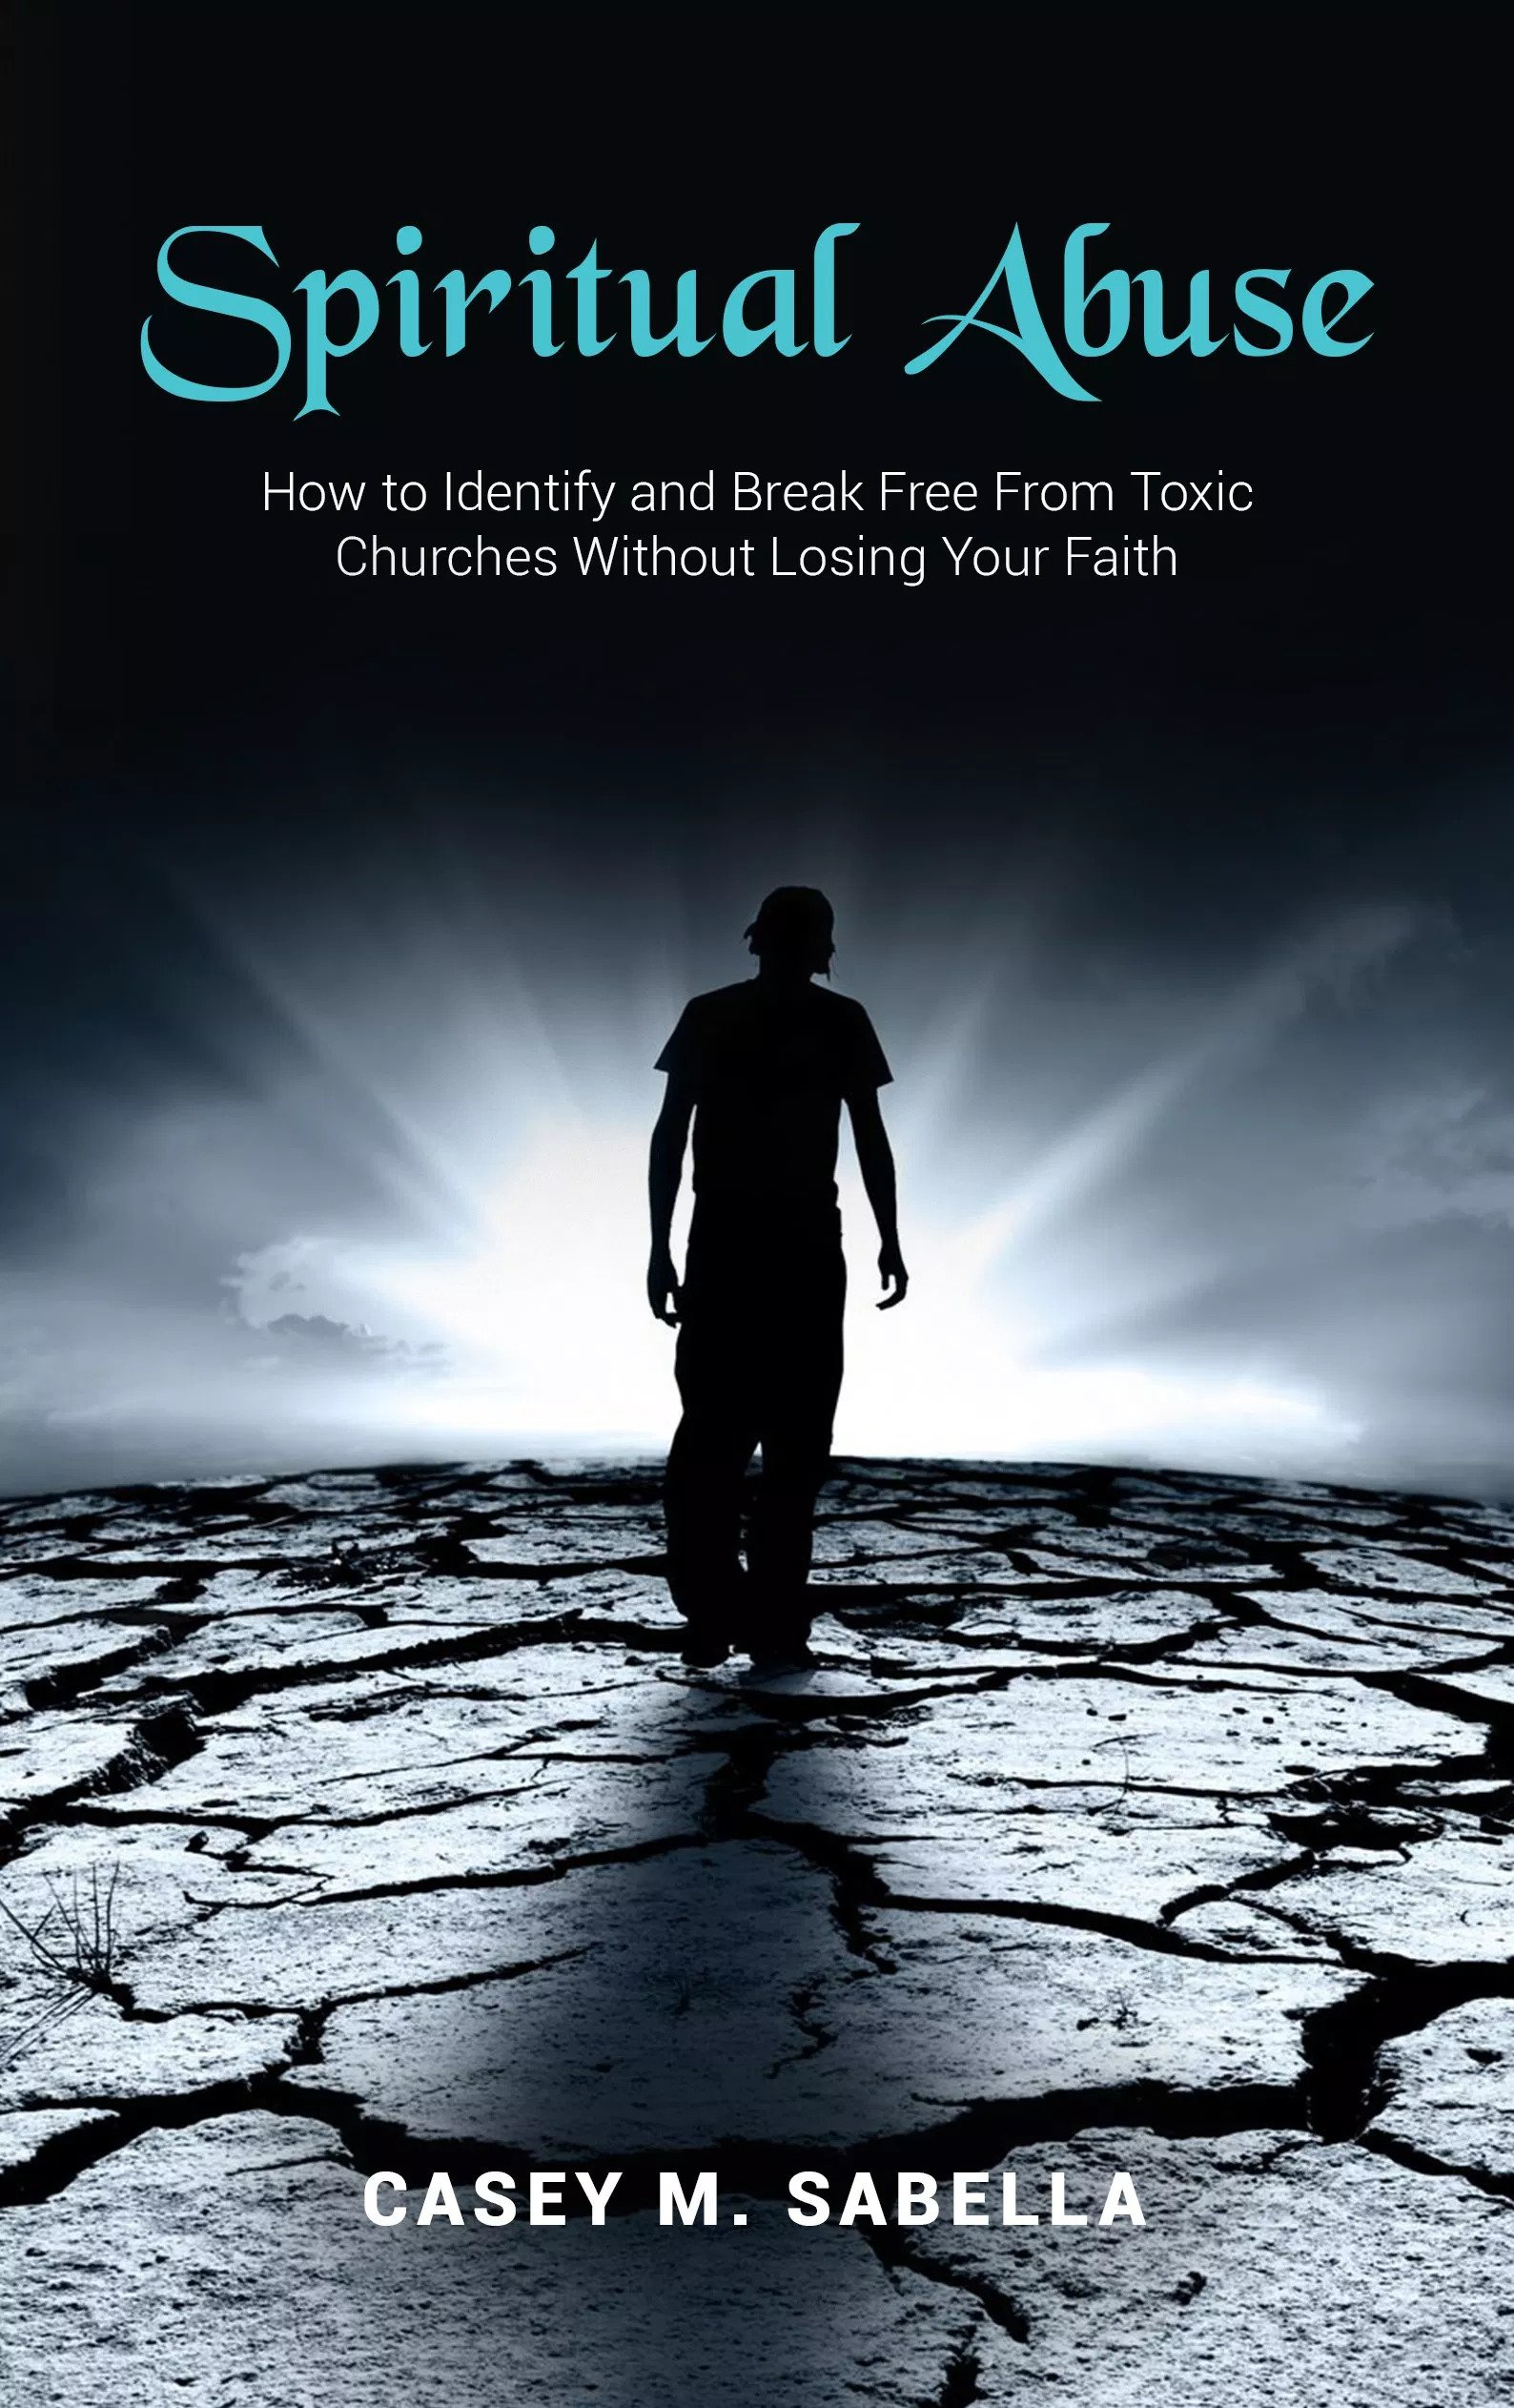 Pastor Launches a New Book to Help Victims of Spiritual Abuse   WebWire